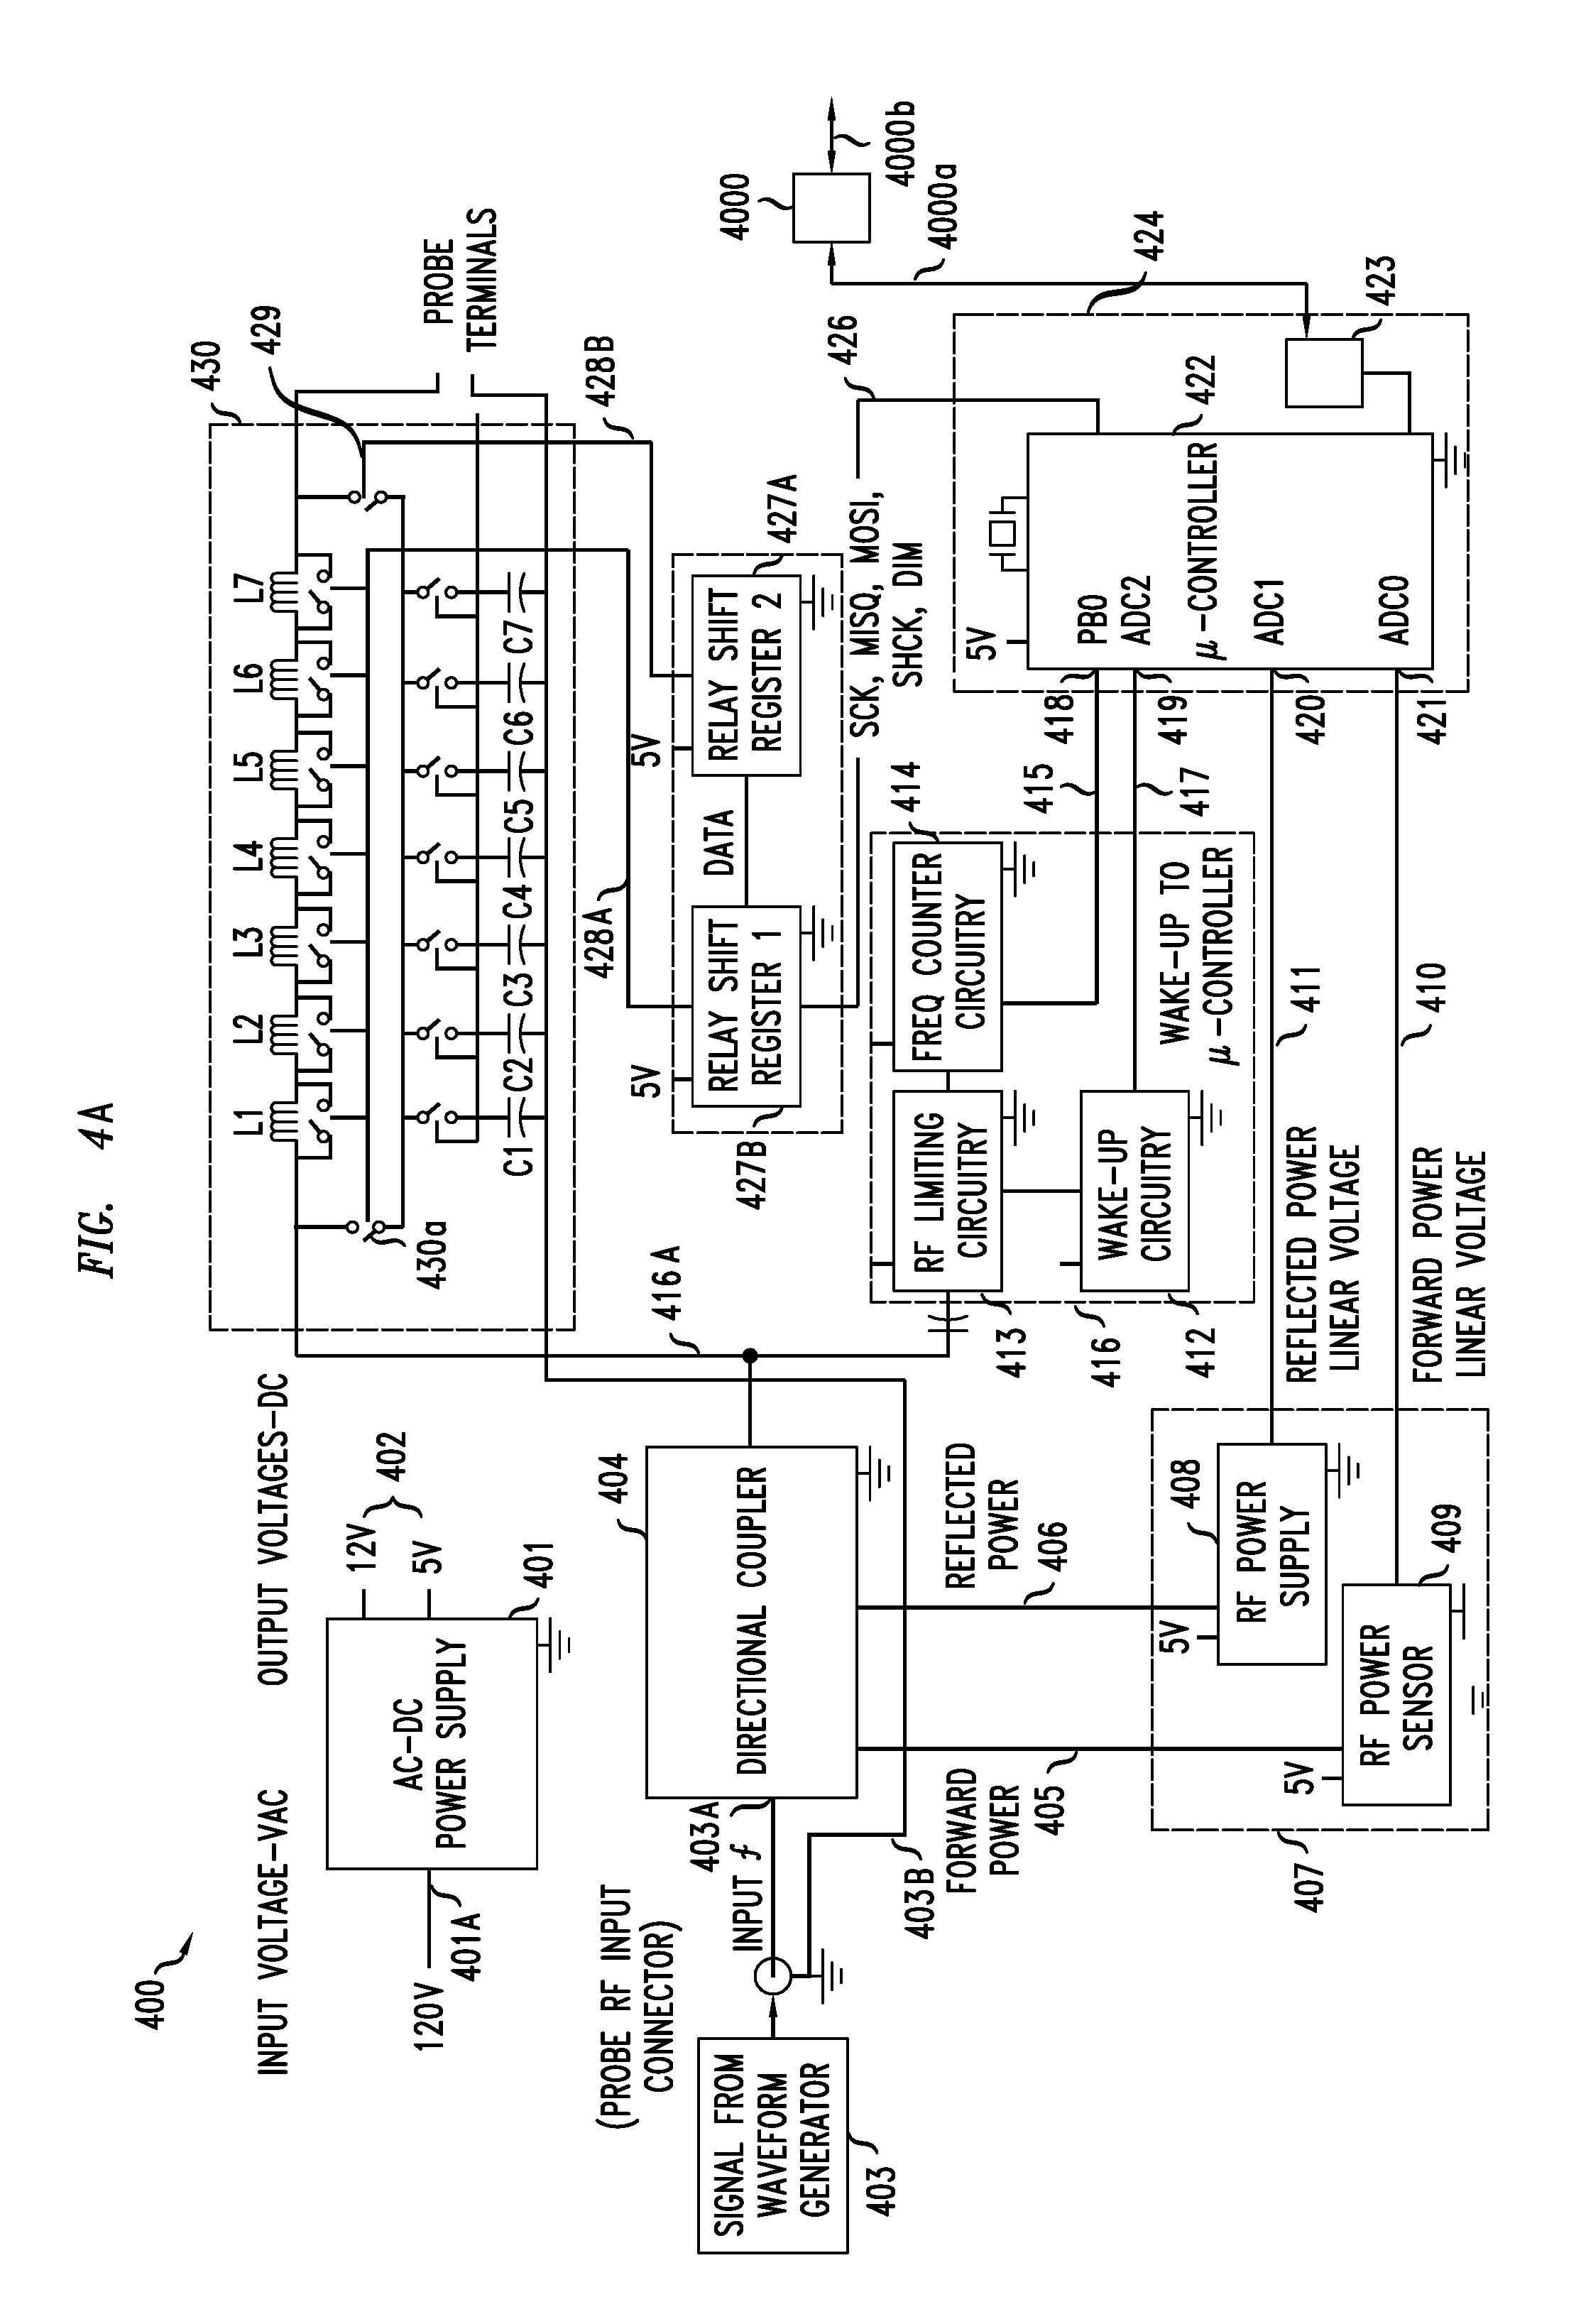 Patent Us 9481588 B2 Ionizer Transormer Dc Power Supply Wiring Diagram 0 Petitions